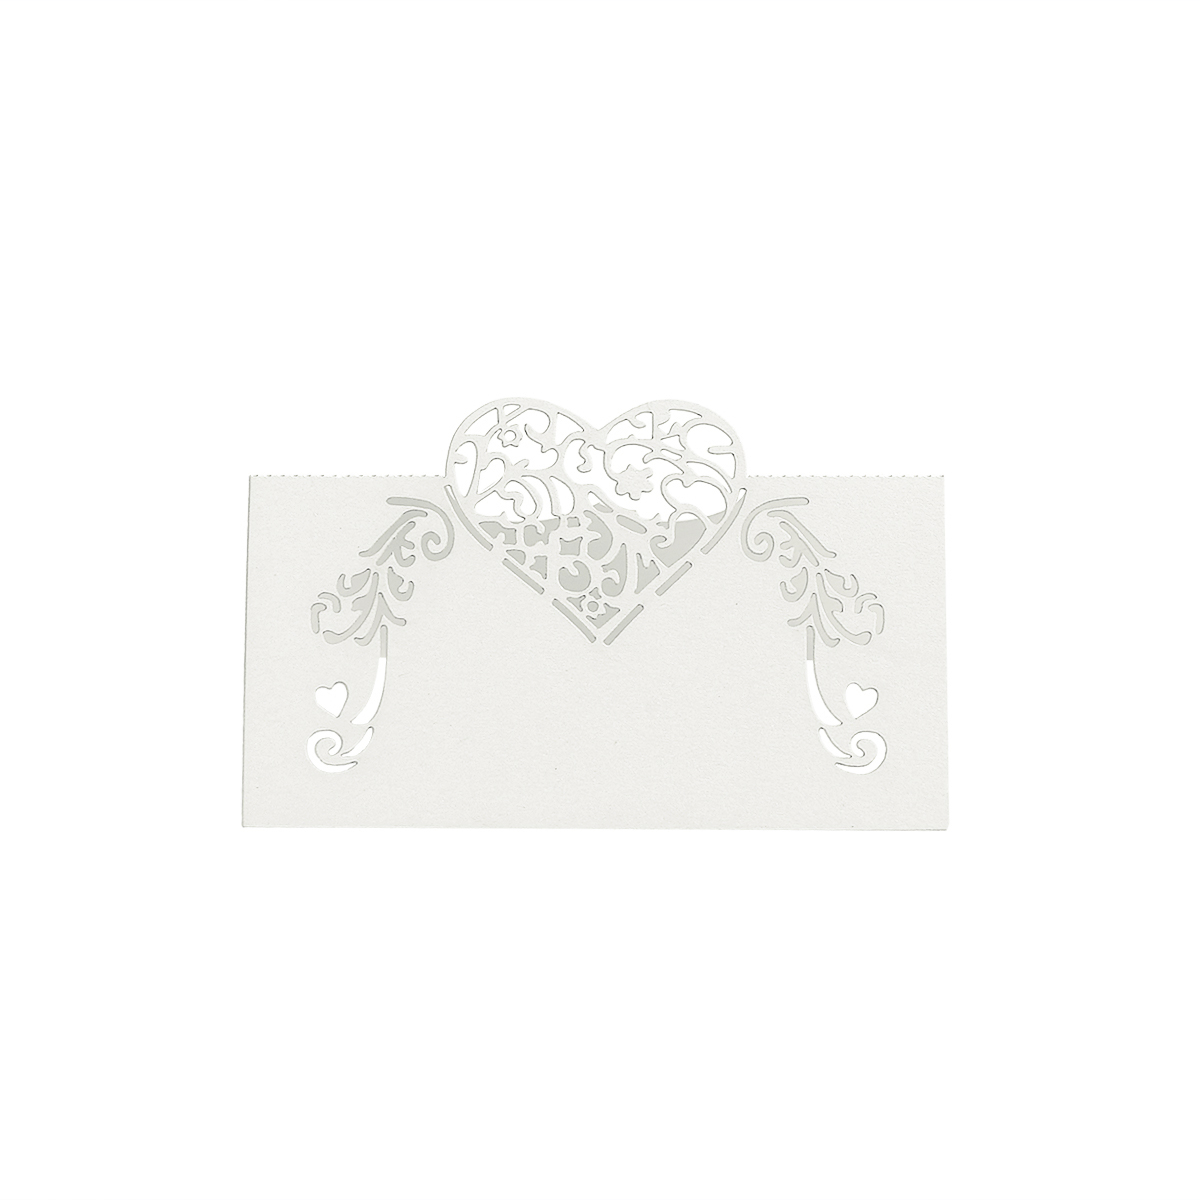 Image 3 - NICEXMAS 50pcs Laser Cut Heart Shape Place Cards Wedding Name Cards For Wedding Party Table Decoration Wedding Decor-in Party DIY Decorations from Home & Garden